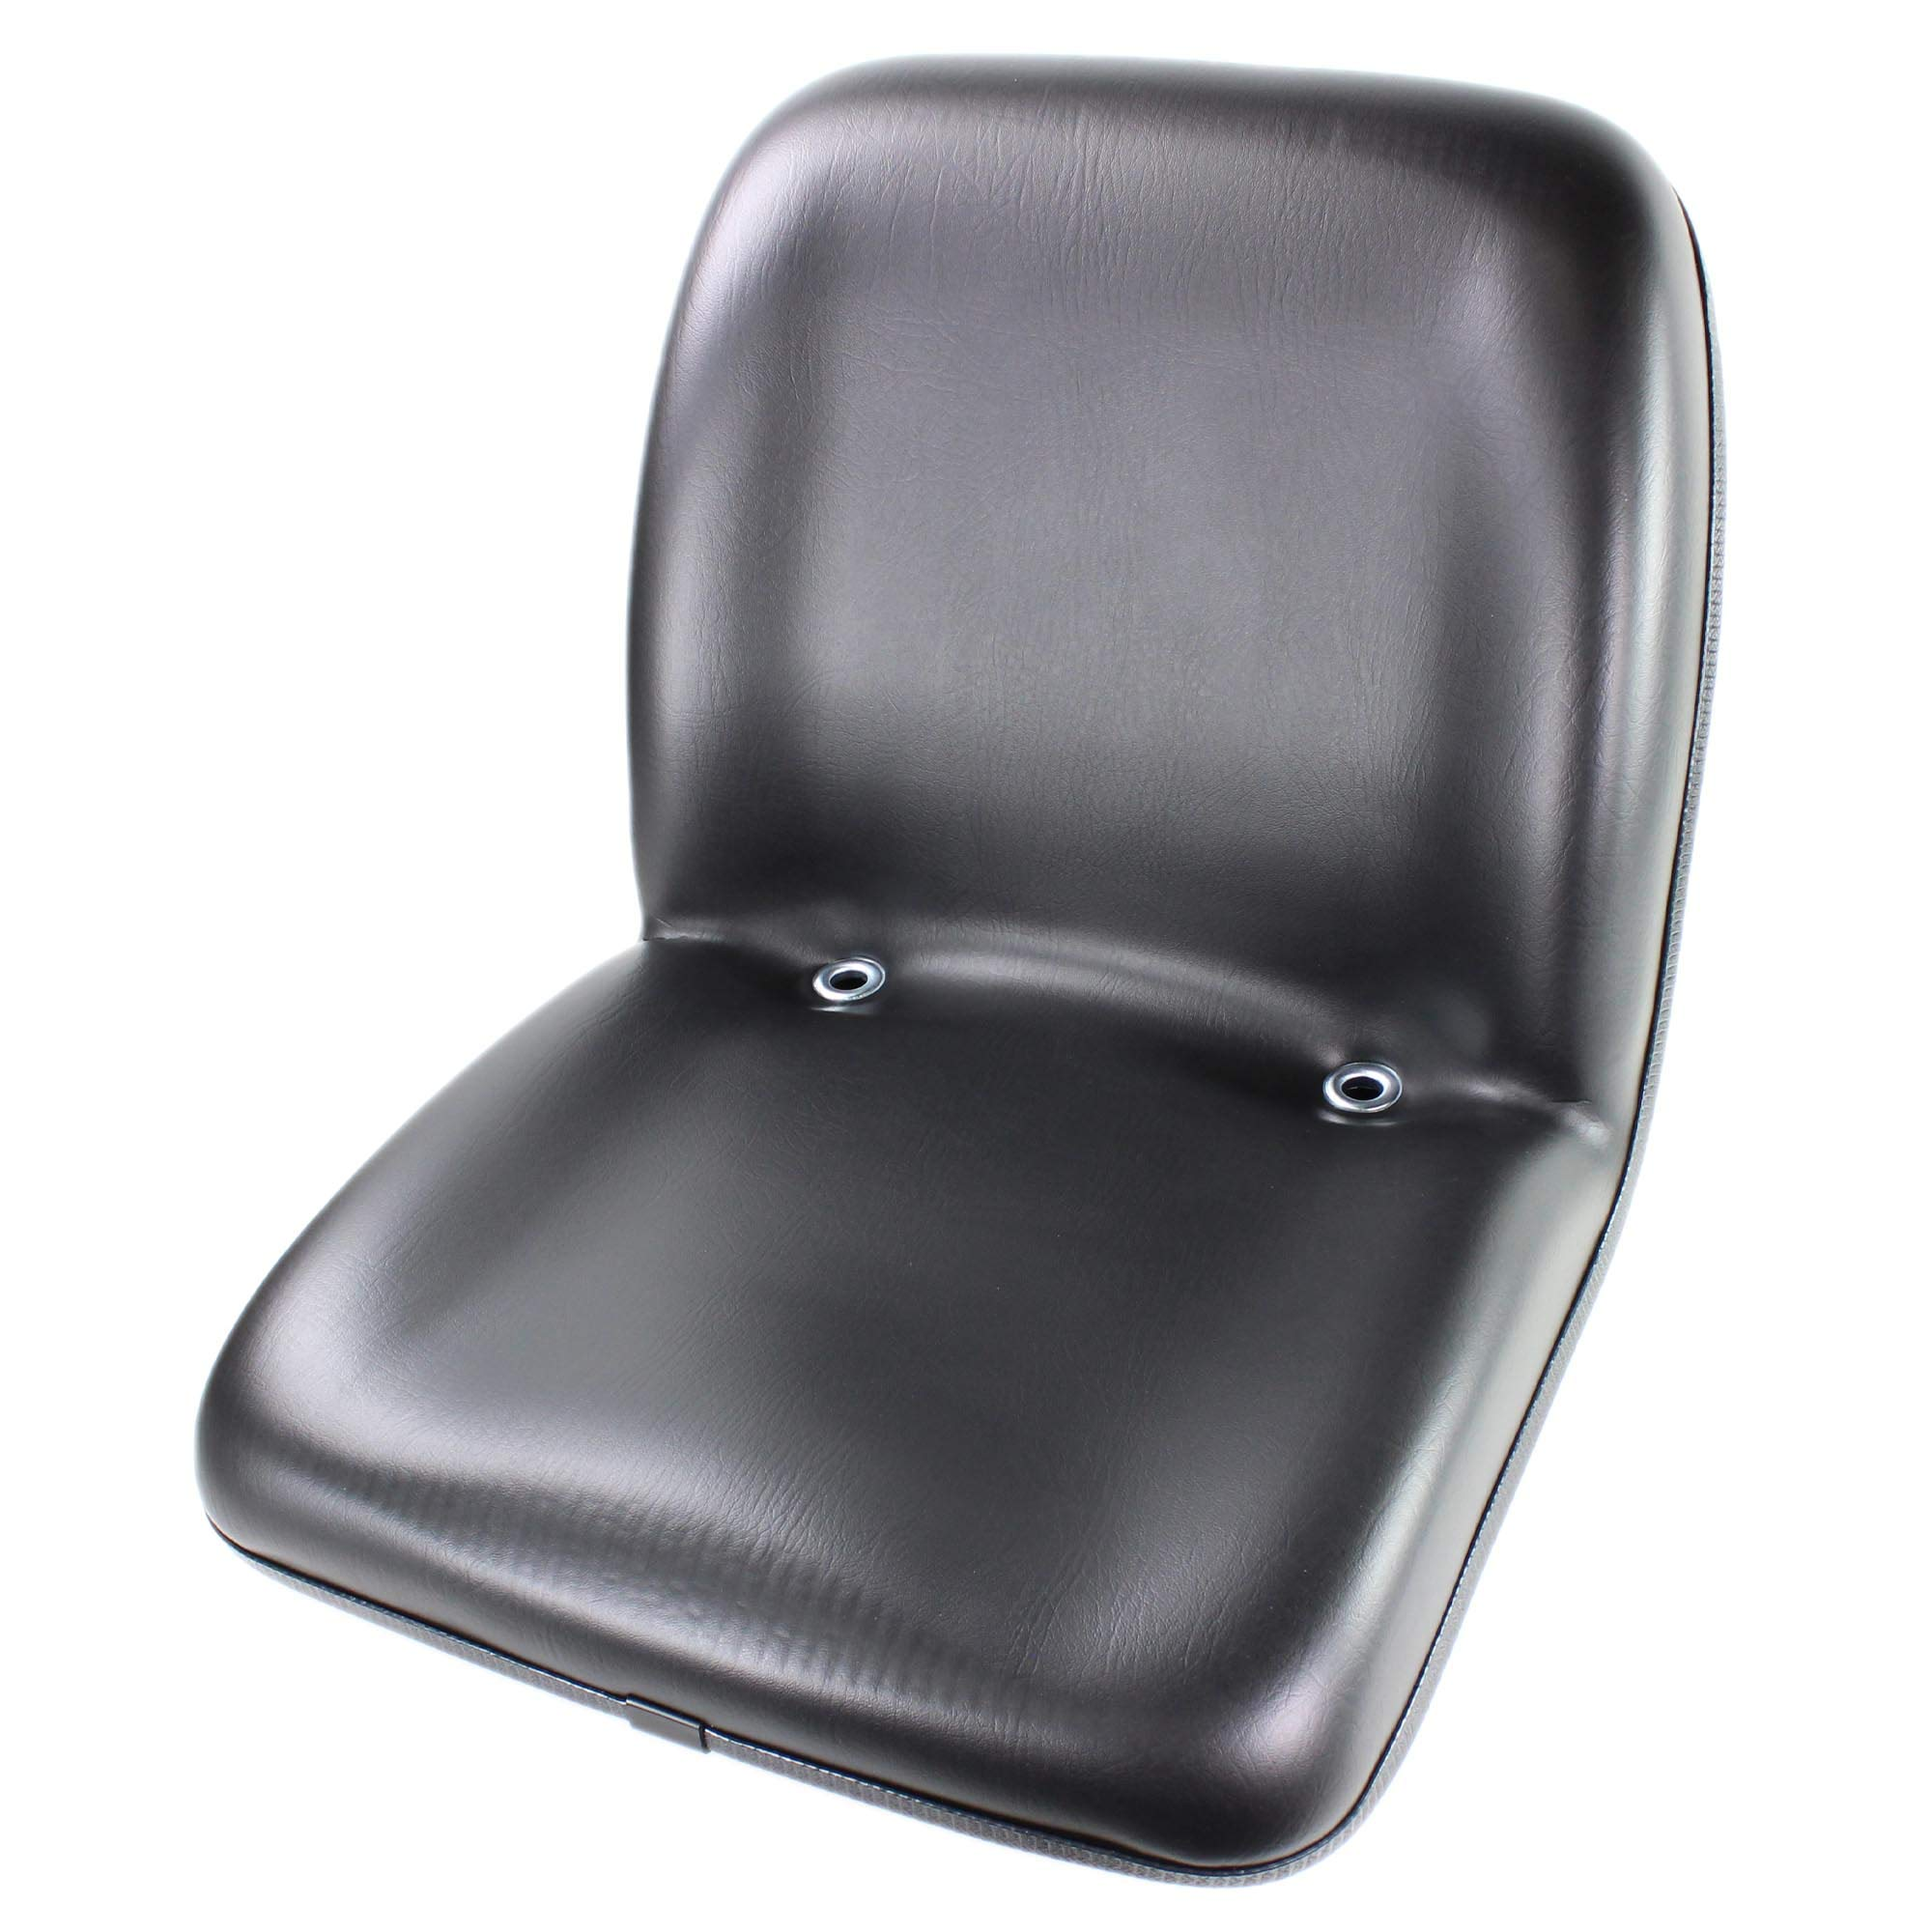 E-32539-18400 DirectFit Tractor Seat for Kubota L5450DT